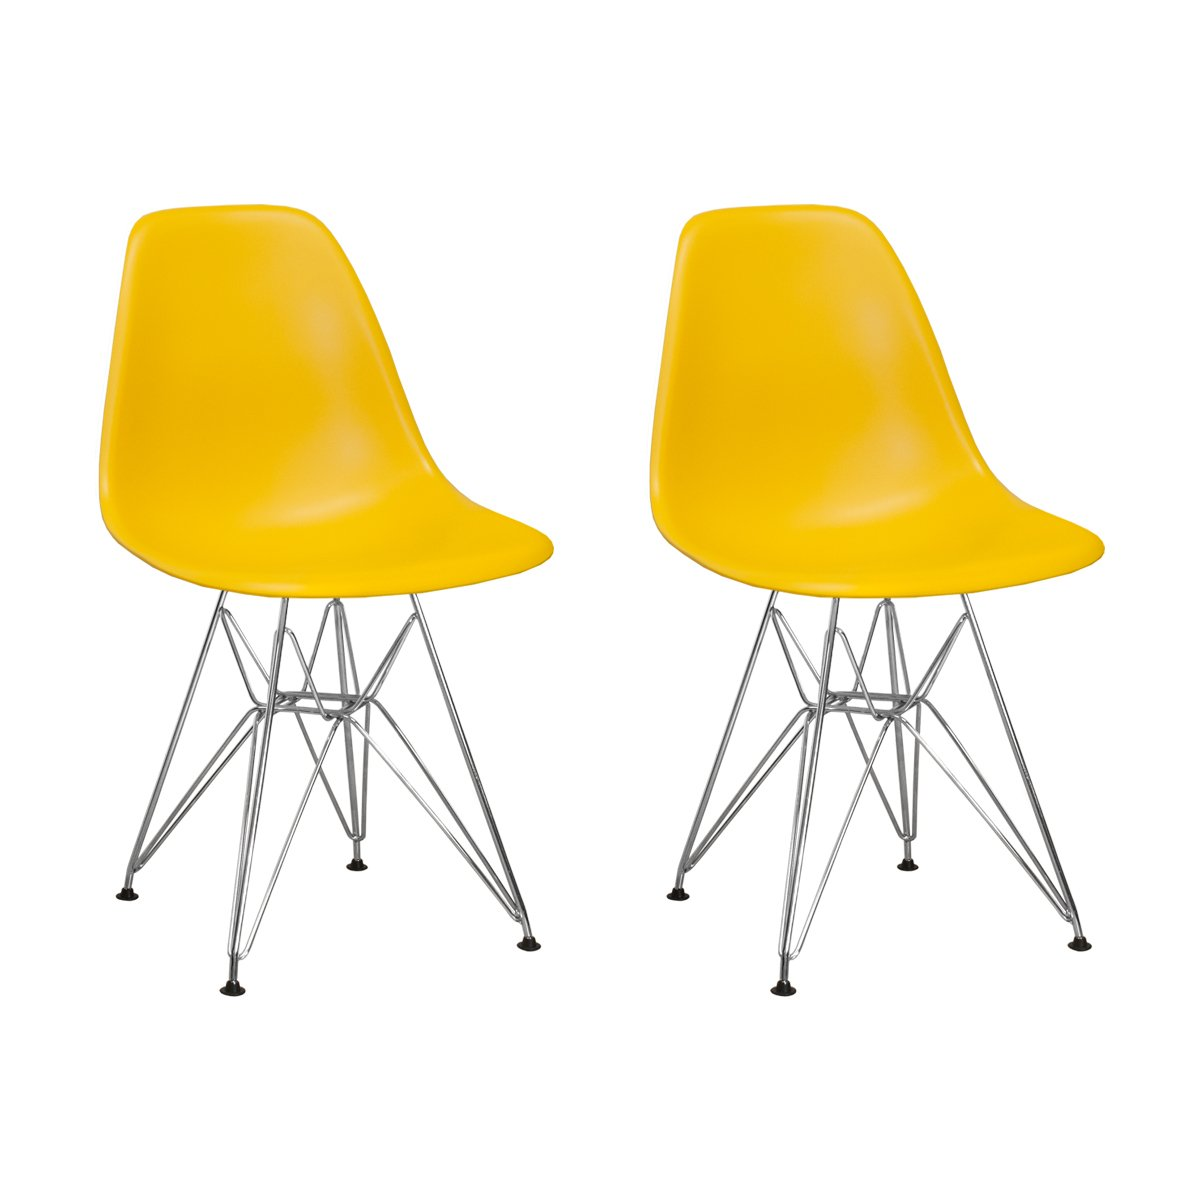 Yellow Mod Made Mid Century Modern Paris Tower Side Chair Dining Chair Bistro Chair for Dining Room Living Room or Kitchen - Black (Set of 2)